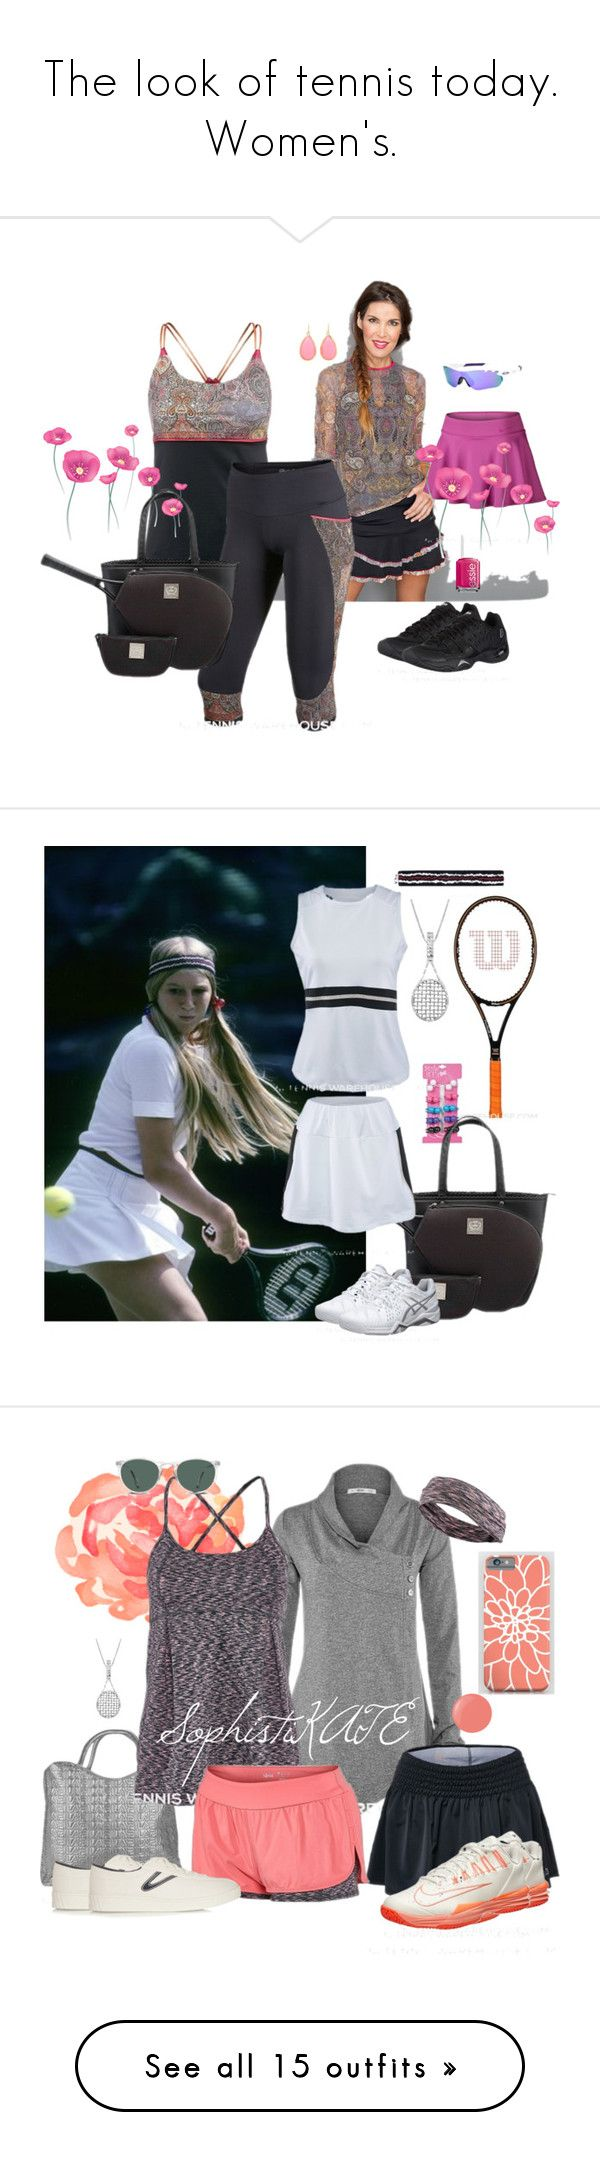 """The look of tennis today. Women's."" by tennisidentity ❤ liked on Polyvore featuring Oakley, NIKE, Kate Spade, Essie, Savanna, Fila, Asics, vintage, Haskell and Tretorn"